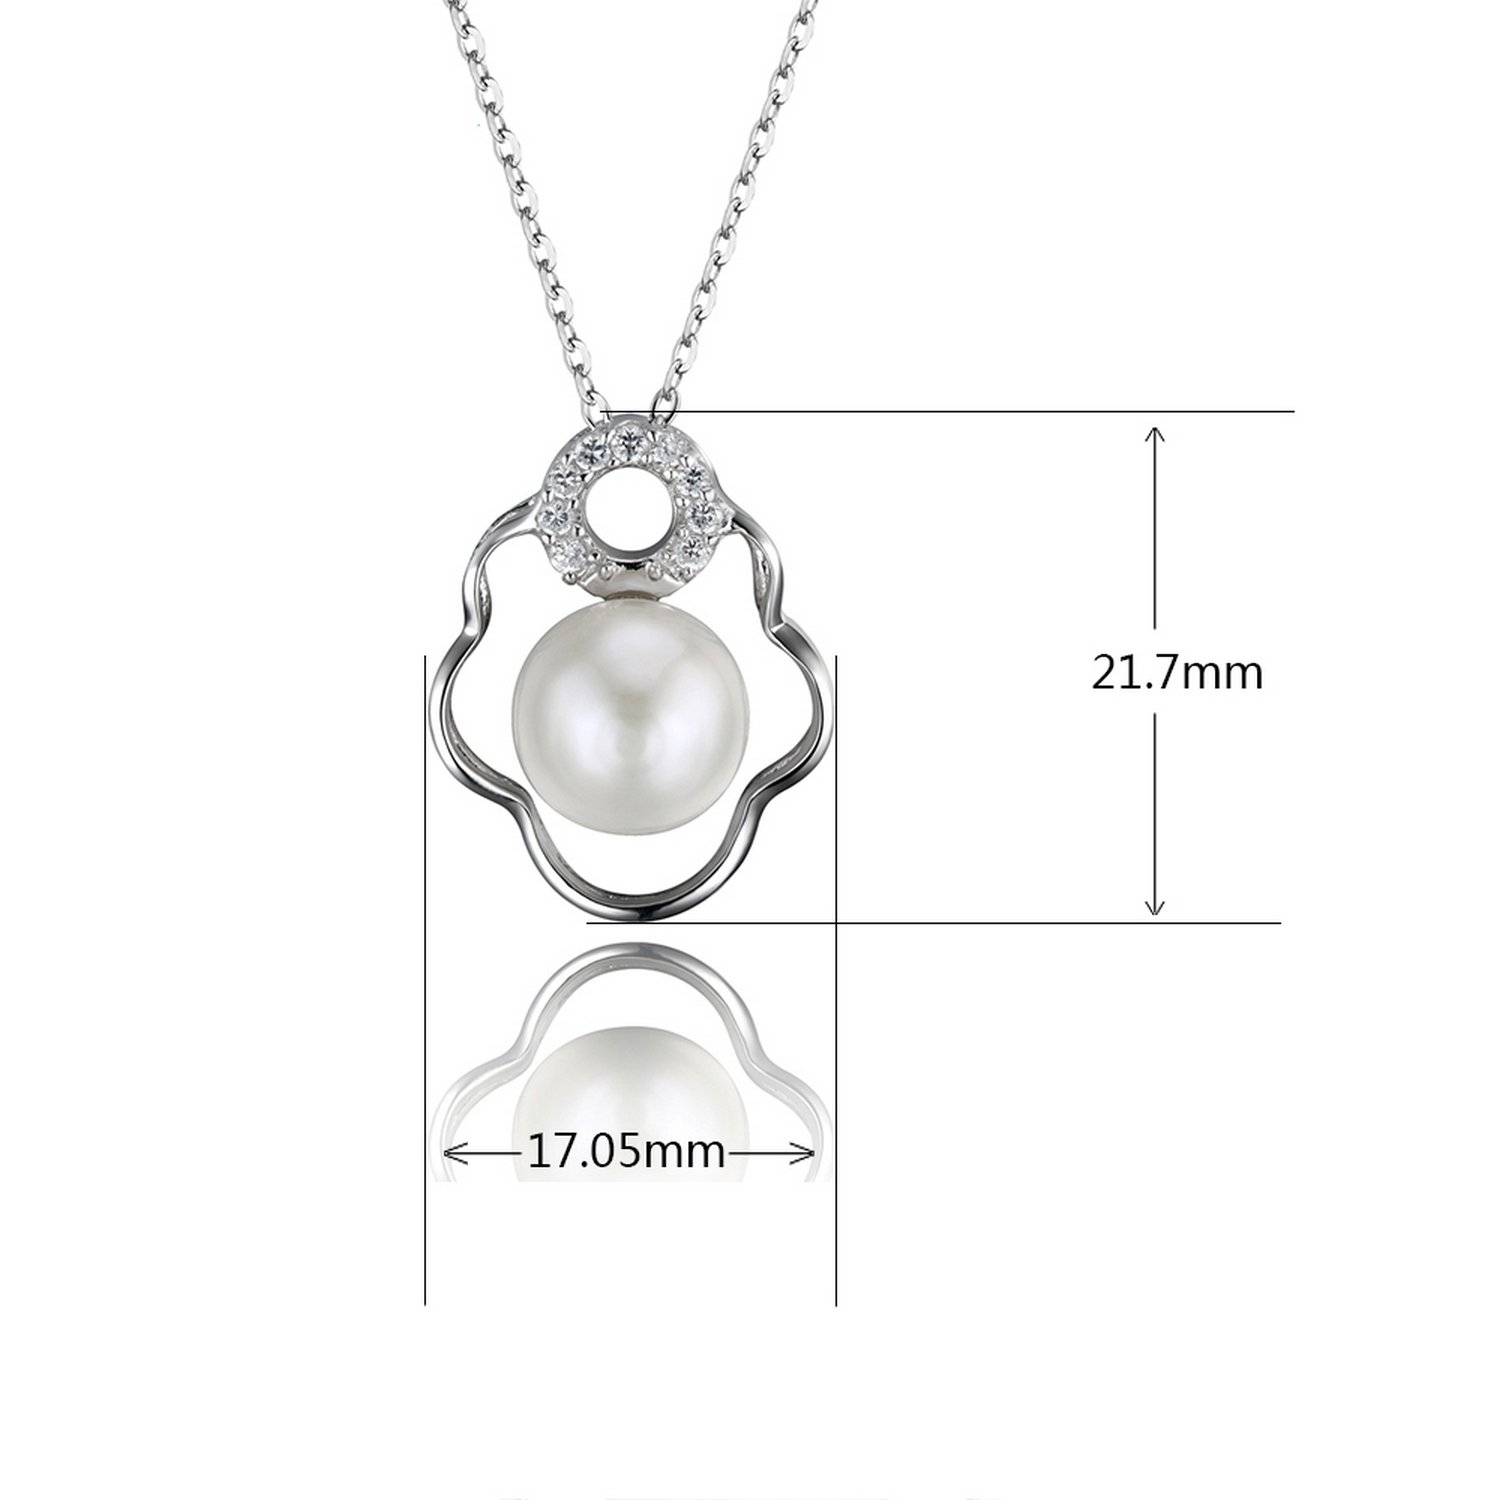 CS-DB Jewelry Silver Jewelry Pearl Chain Charm Pendants Necklaces